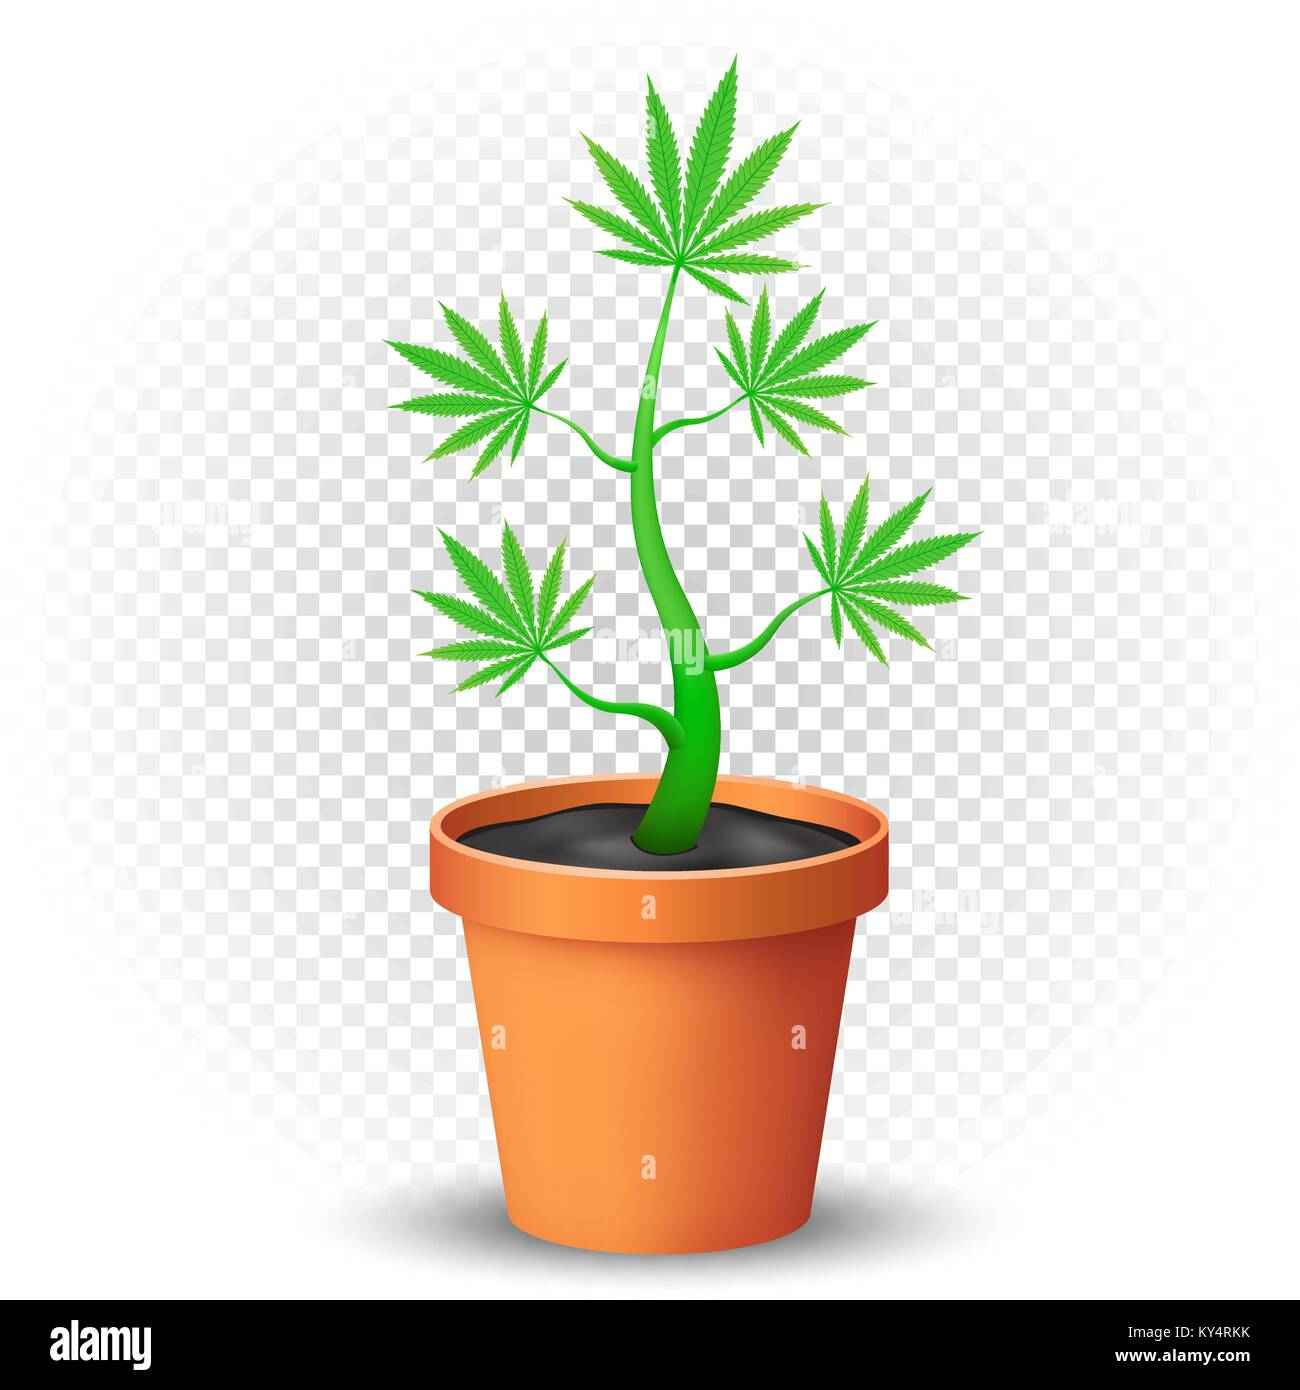 cannabis plant grows in flowerpot - Stock Image